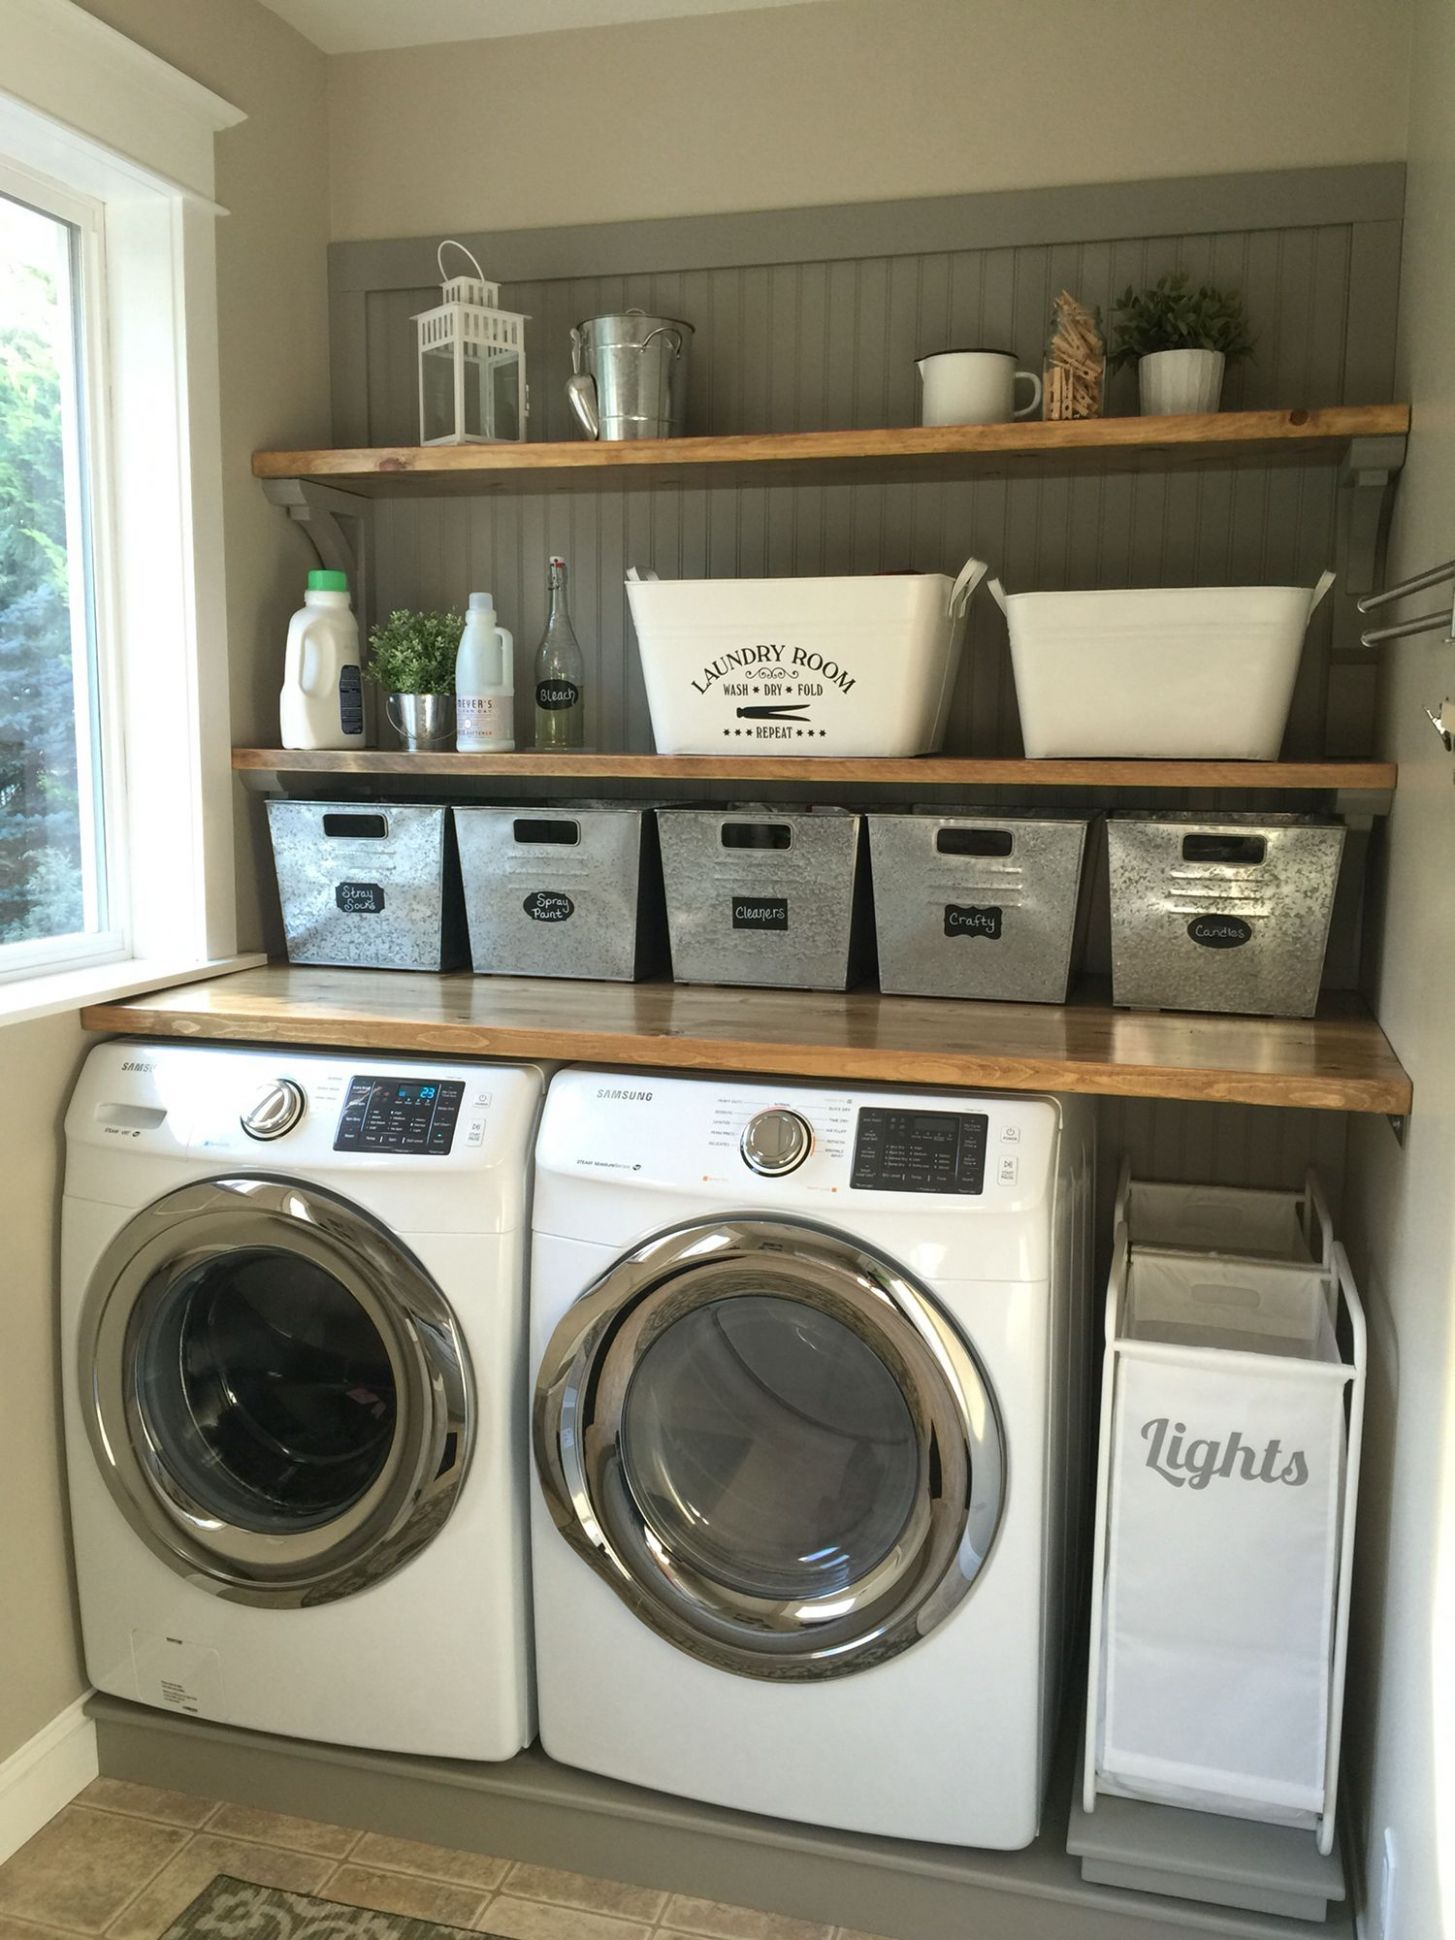 Pin by Mathilde LE COROLLER on Home & decorating | Laundry room ...